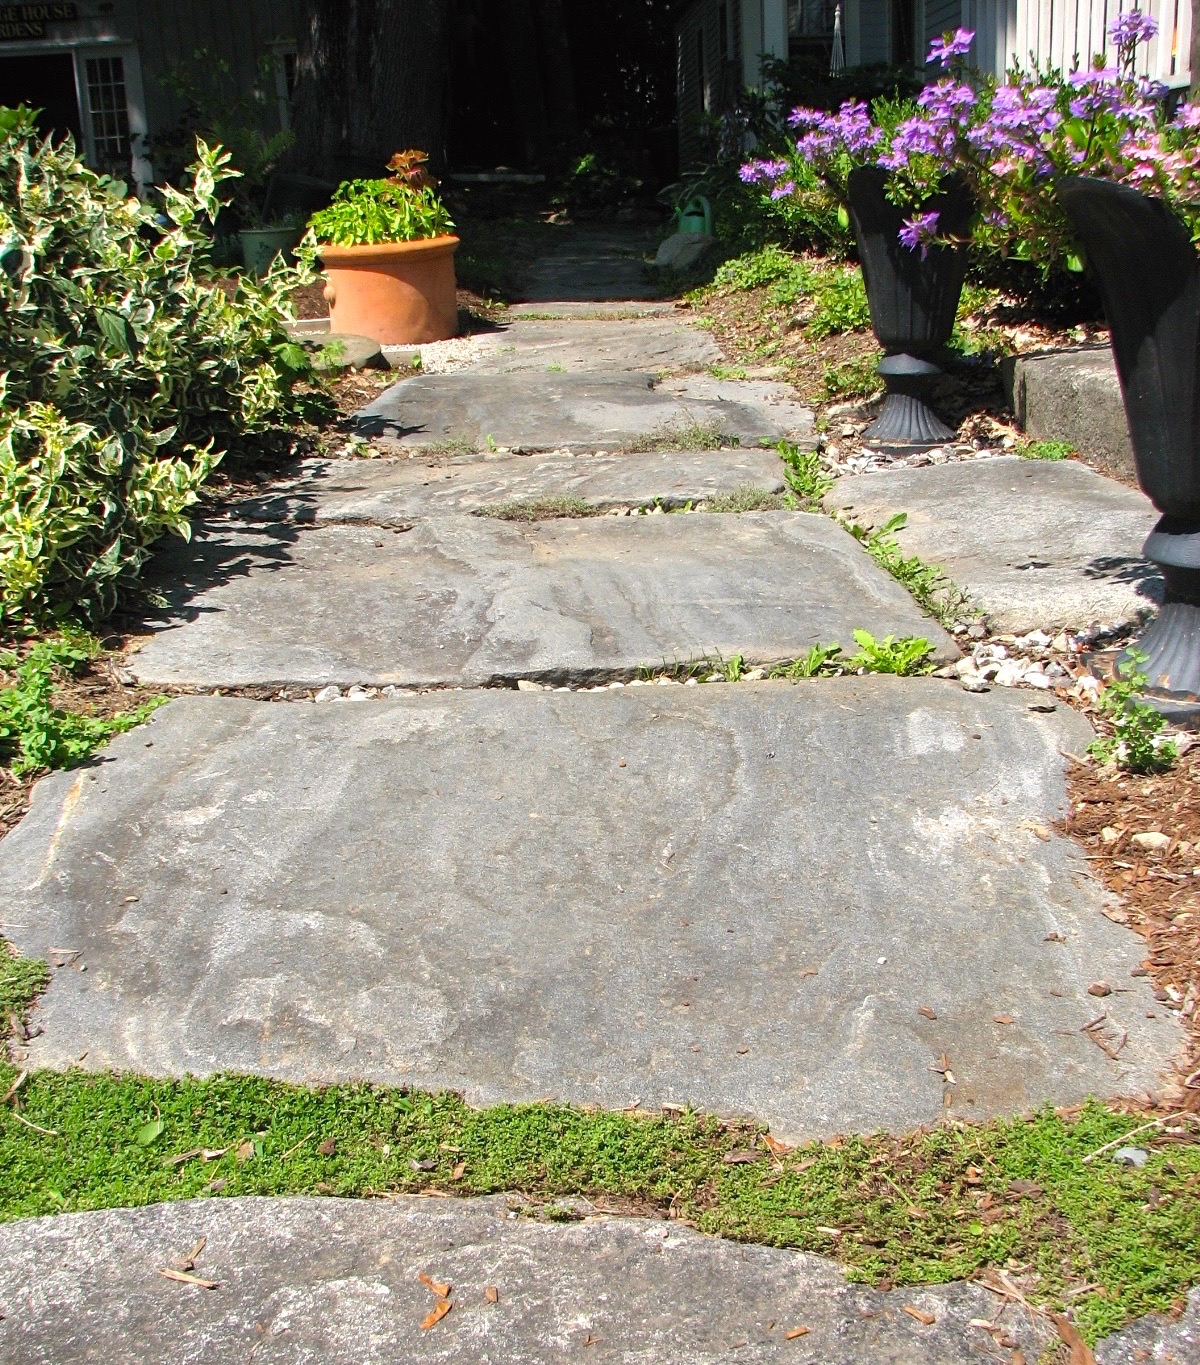 paths, or circulation, are an important element of a successful garden.